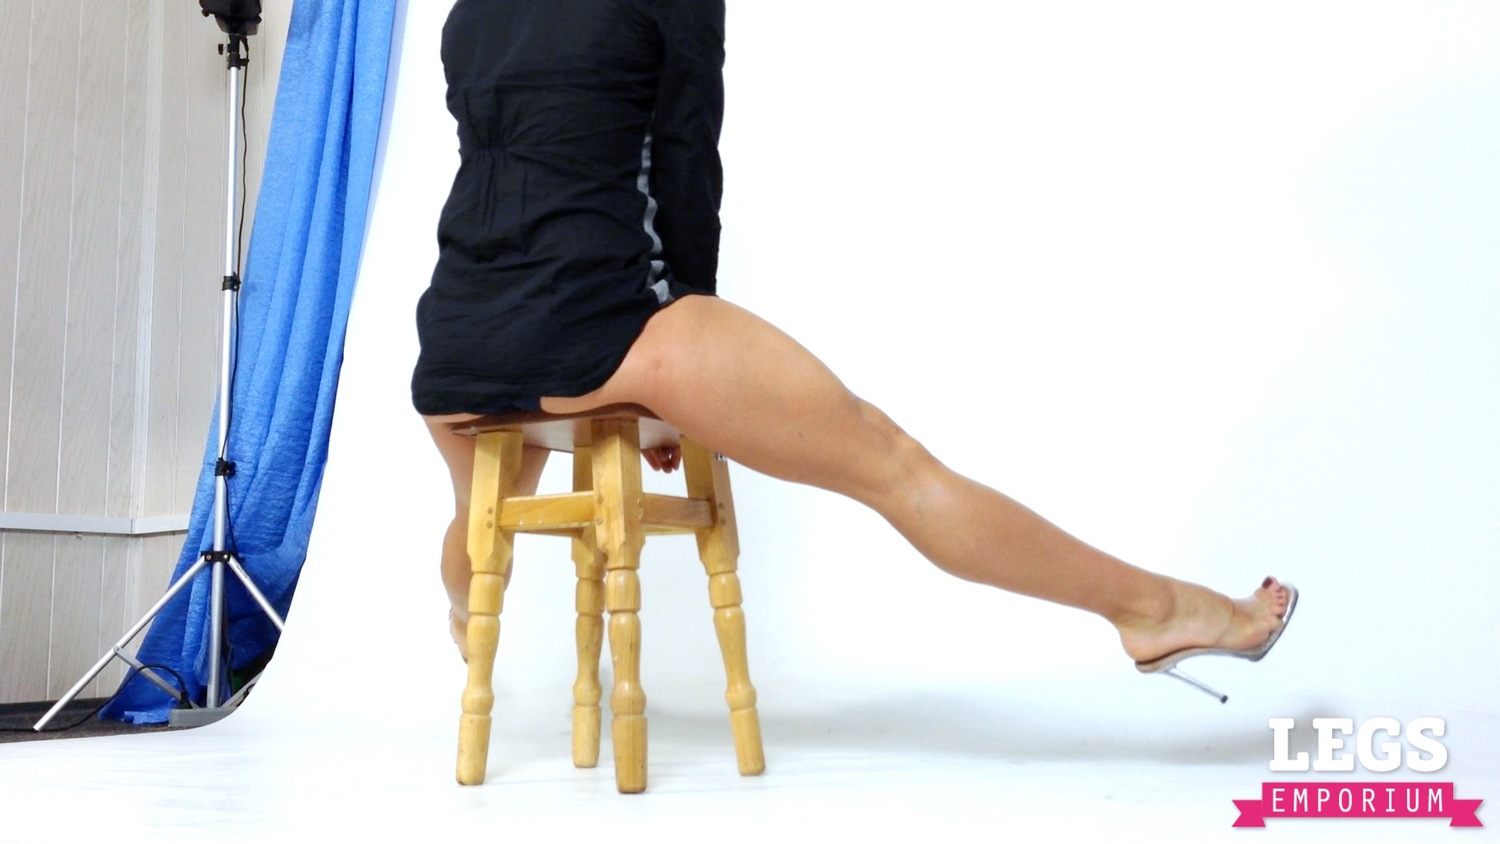 Almay bare-it all legs reviews, photo - Makeupalley